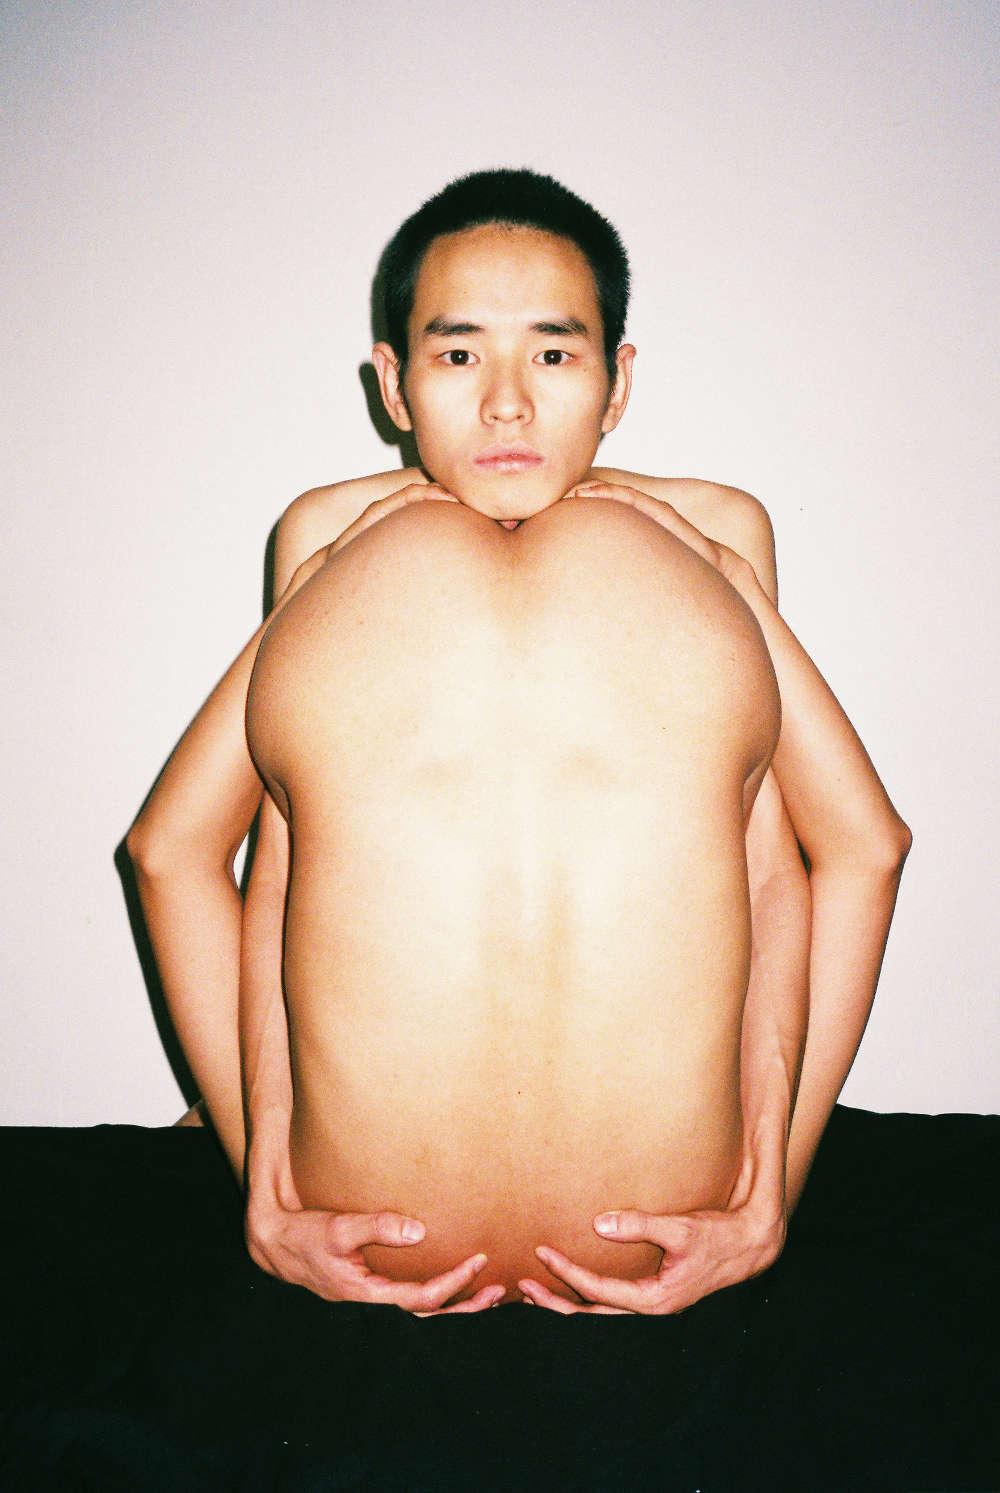 Ren Hang, Untitled, China, 2015 © Courtesy of Estate of Ren Hang and OstLicht Gallery